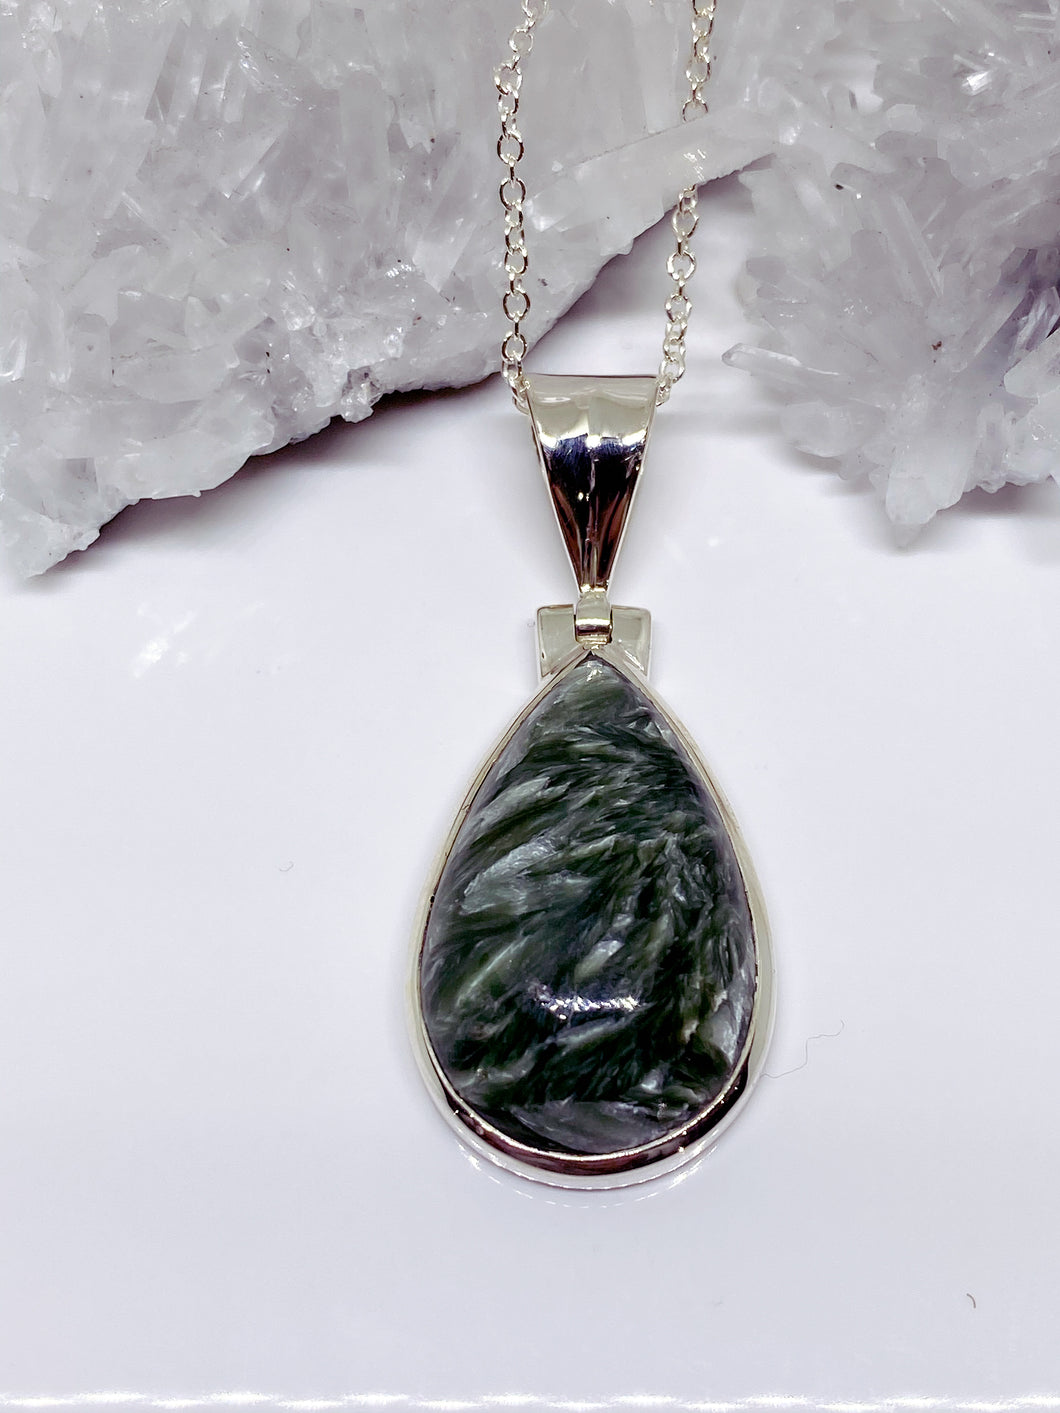 Seraphinite Pendant - Sterling Silver with Chain